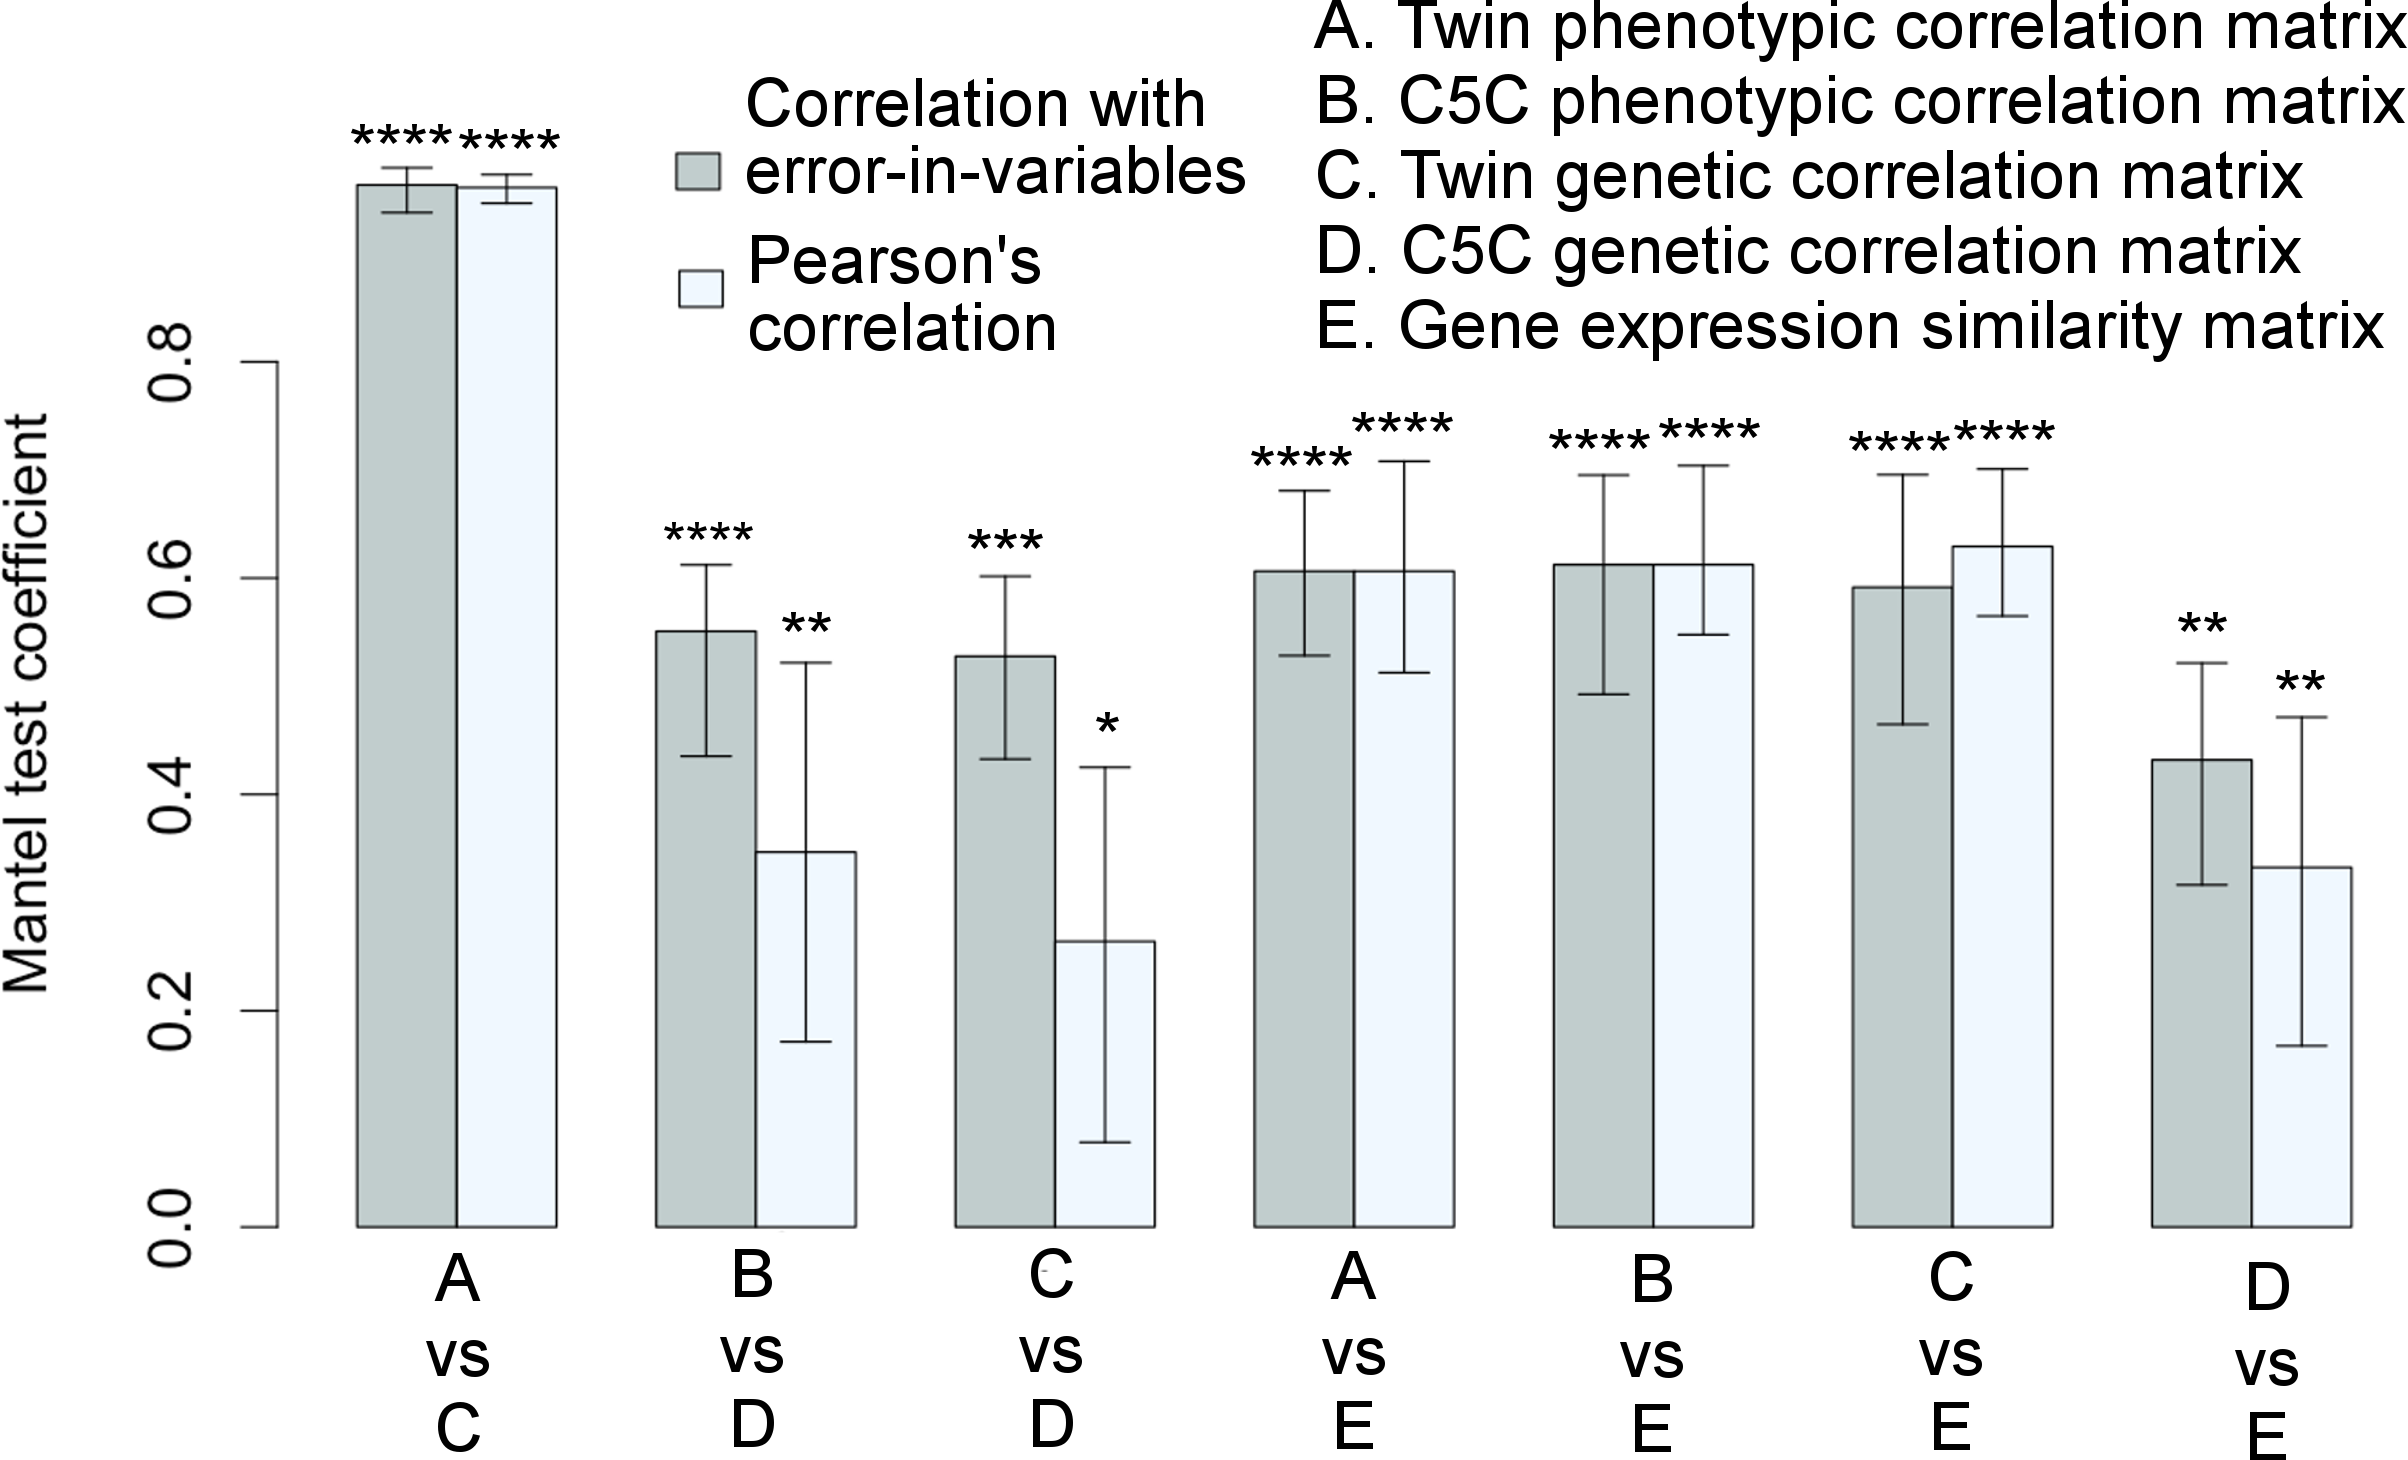 Significant associations among correlation matrices.